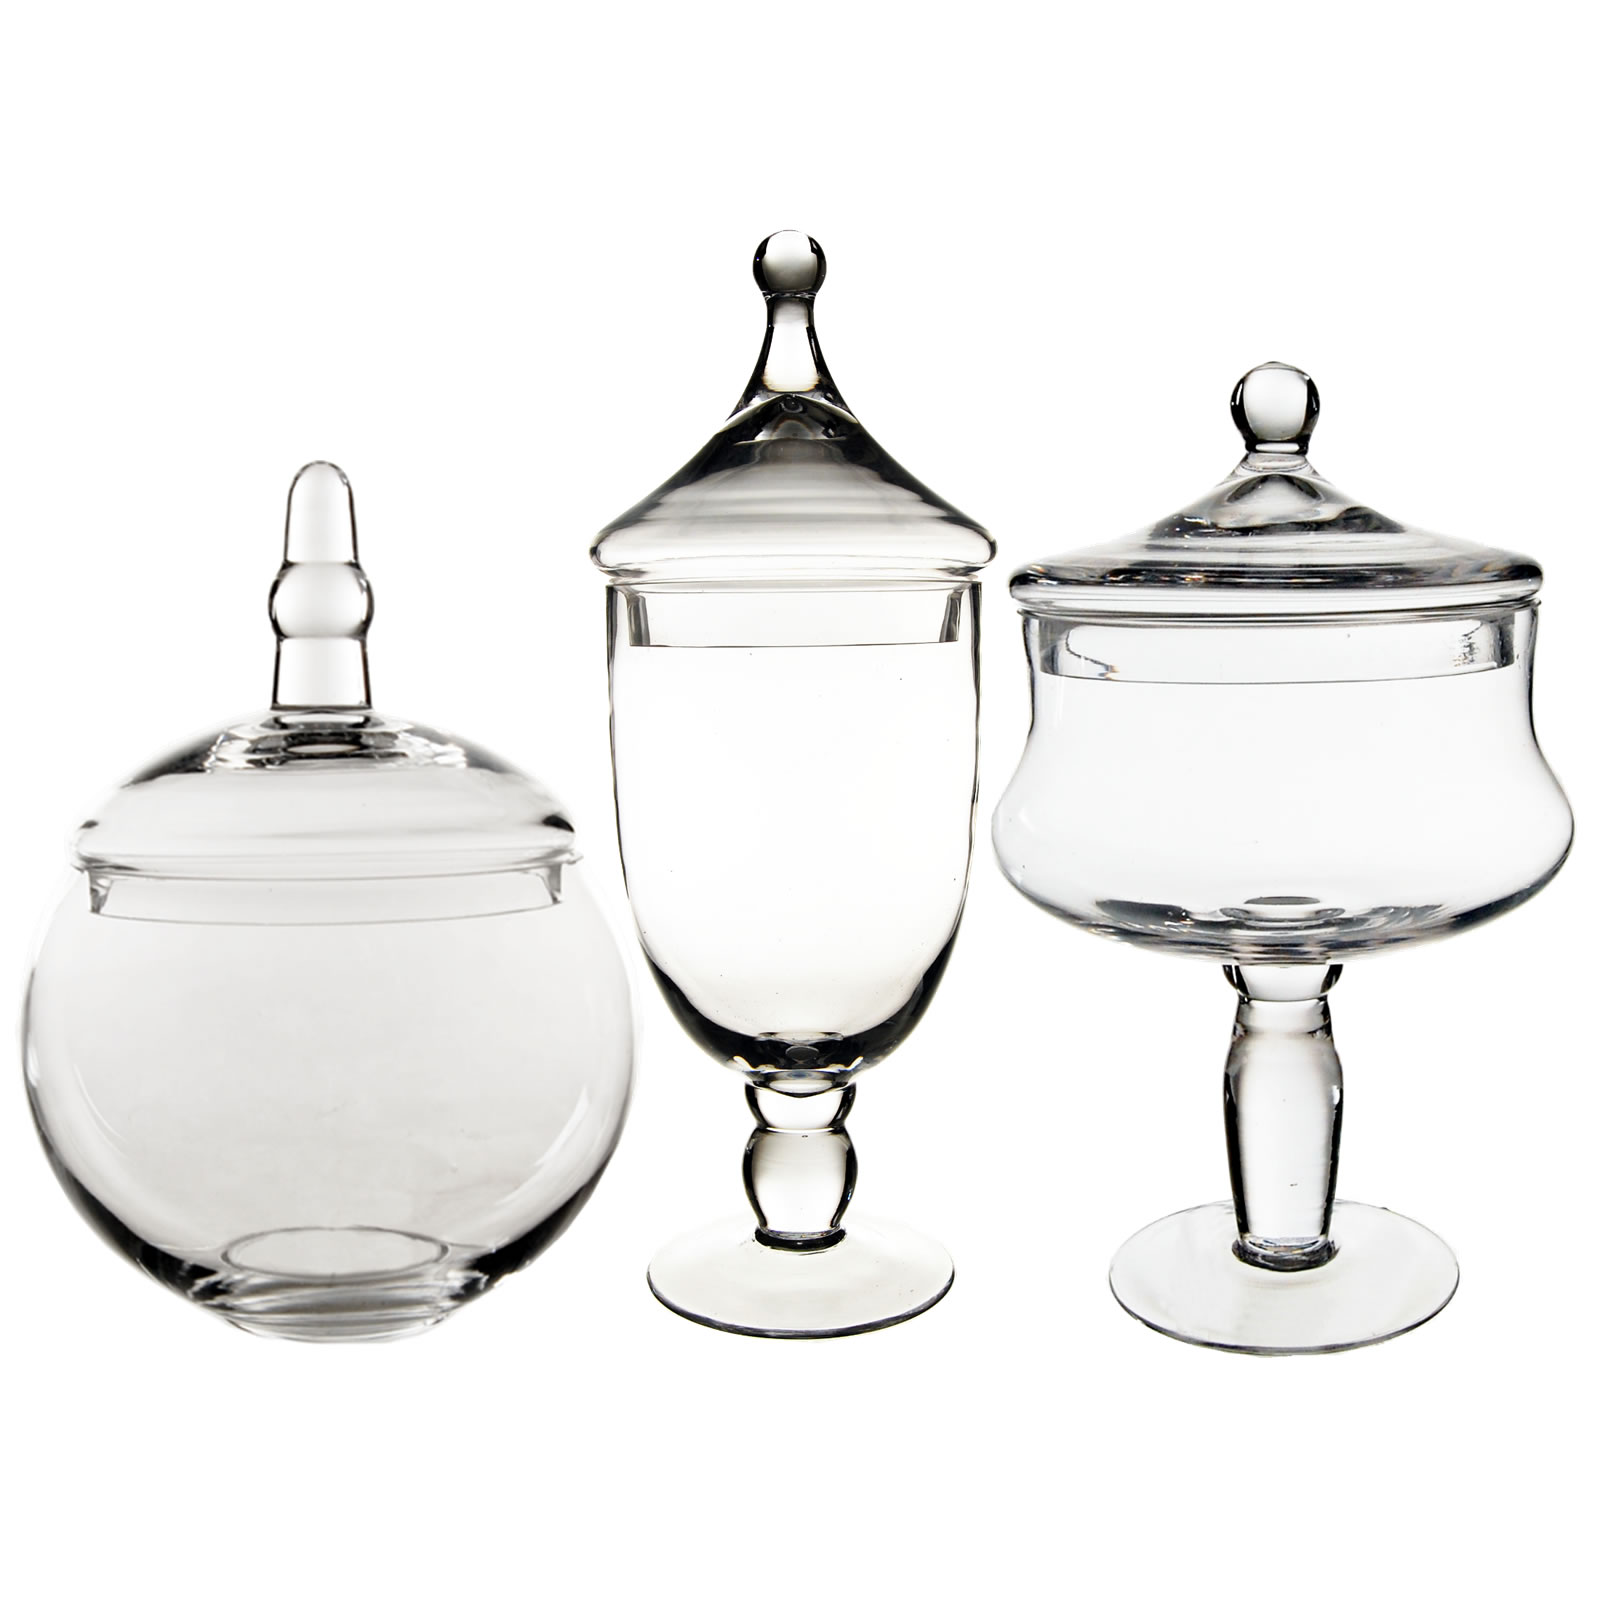 "Glass Apothecary Jars Set of 3, H-16.5"", 12"", 10"""